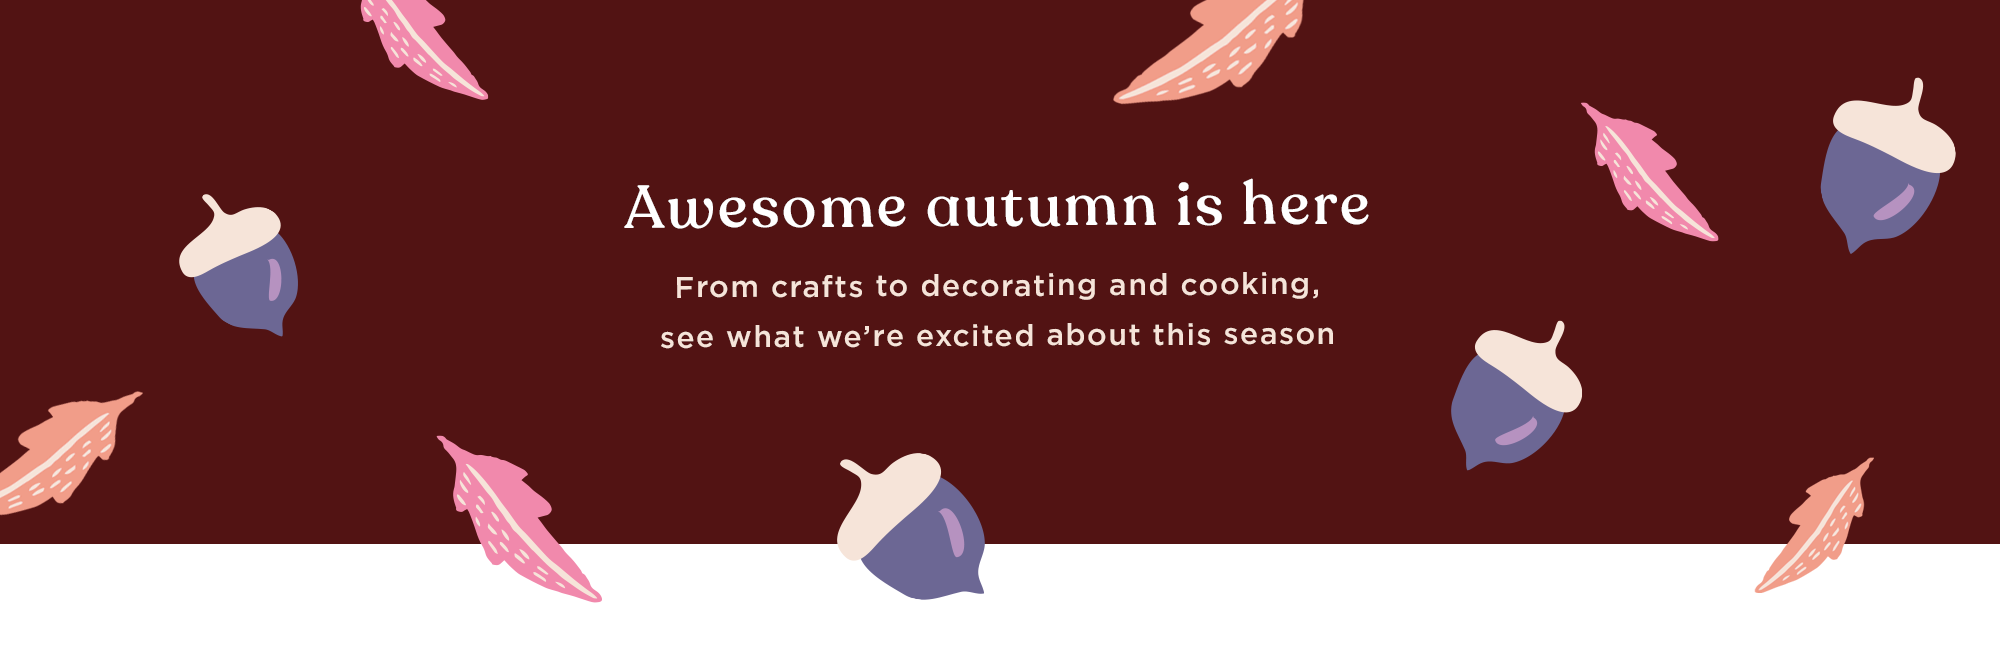 Awesome autumn is here